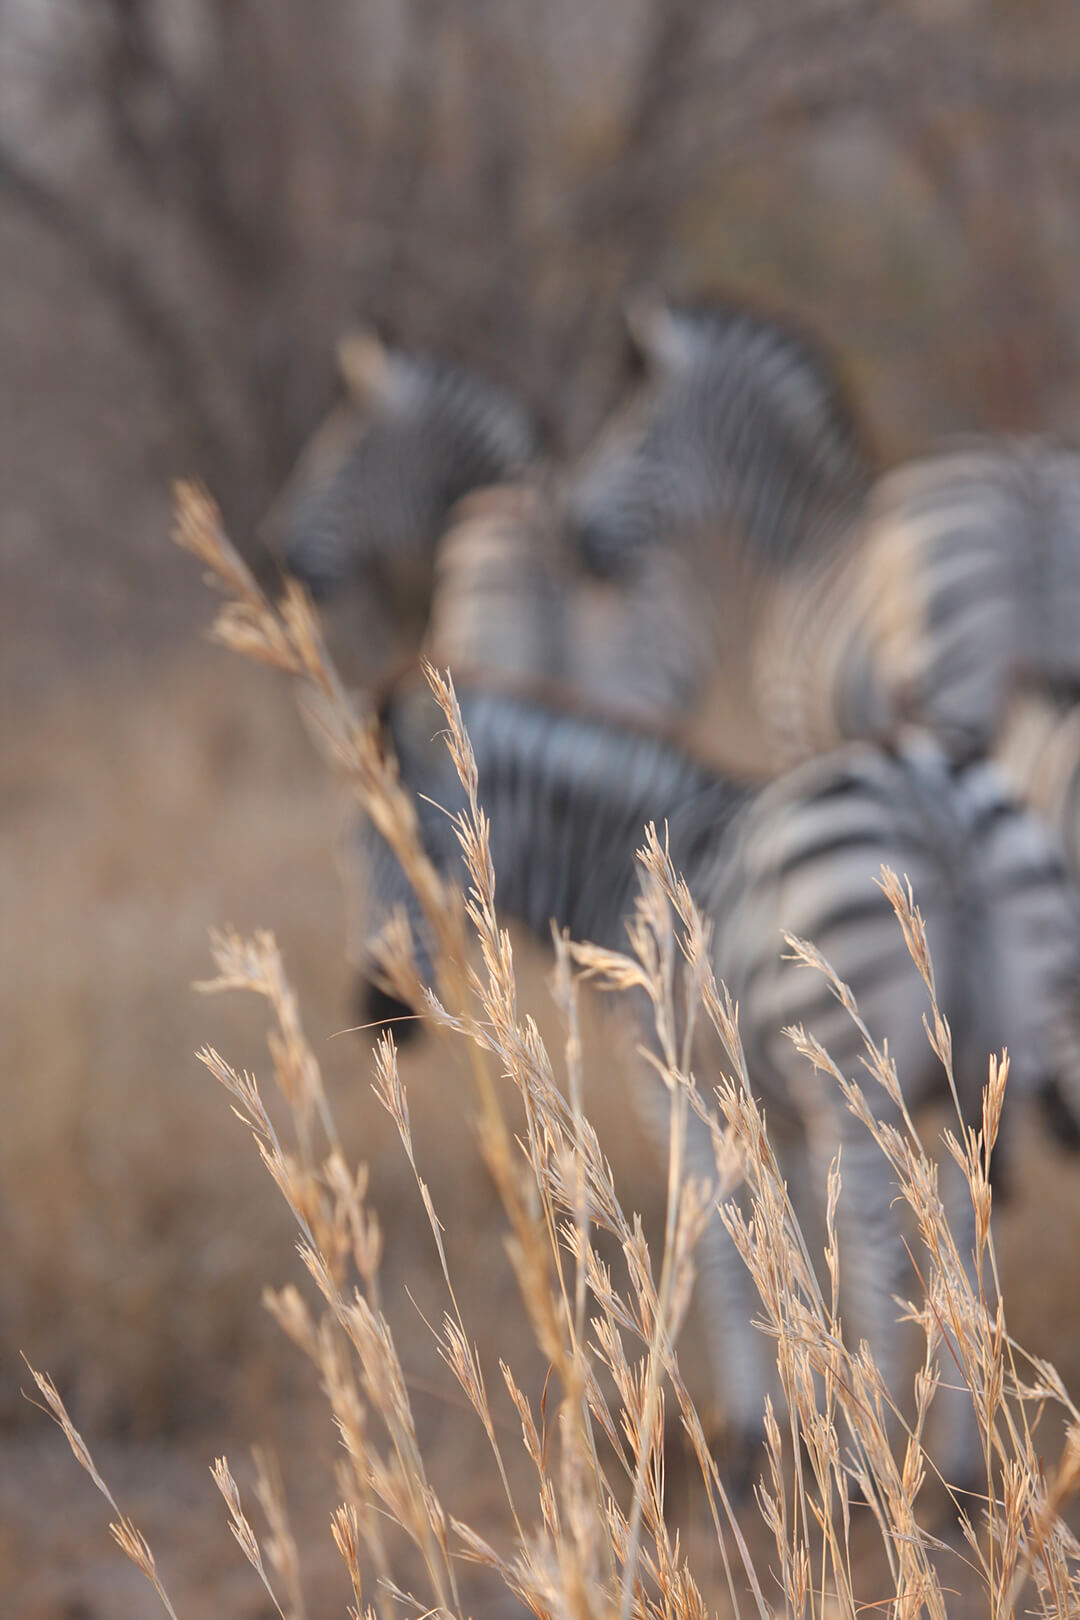 Stripes in the long grass by Malcolm Bowling